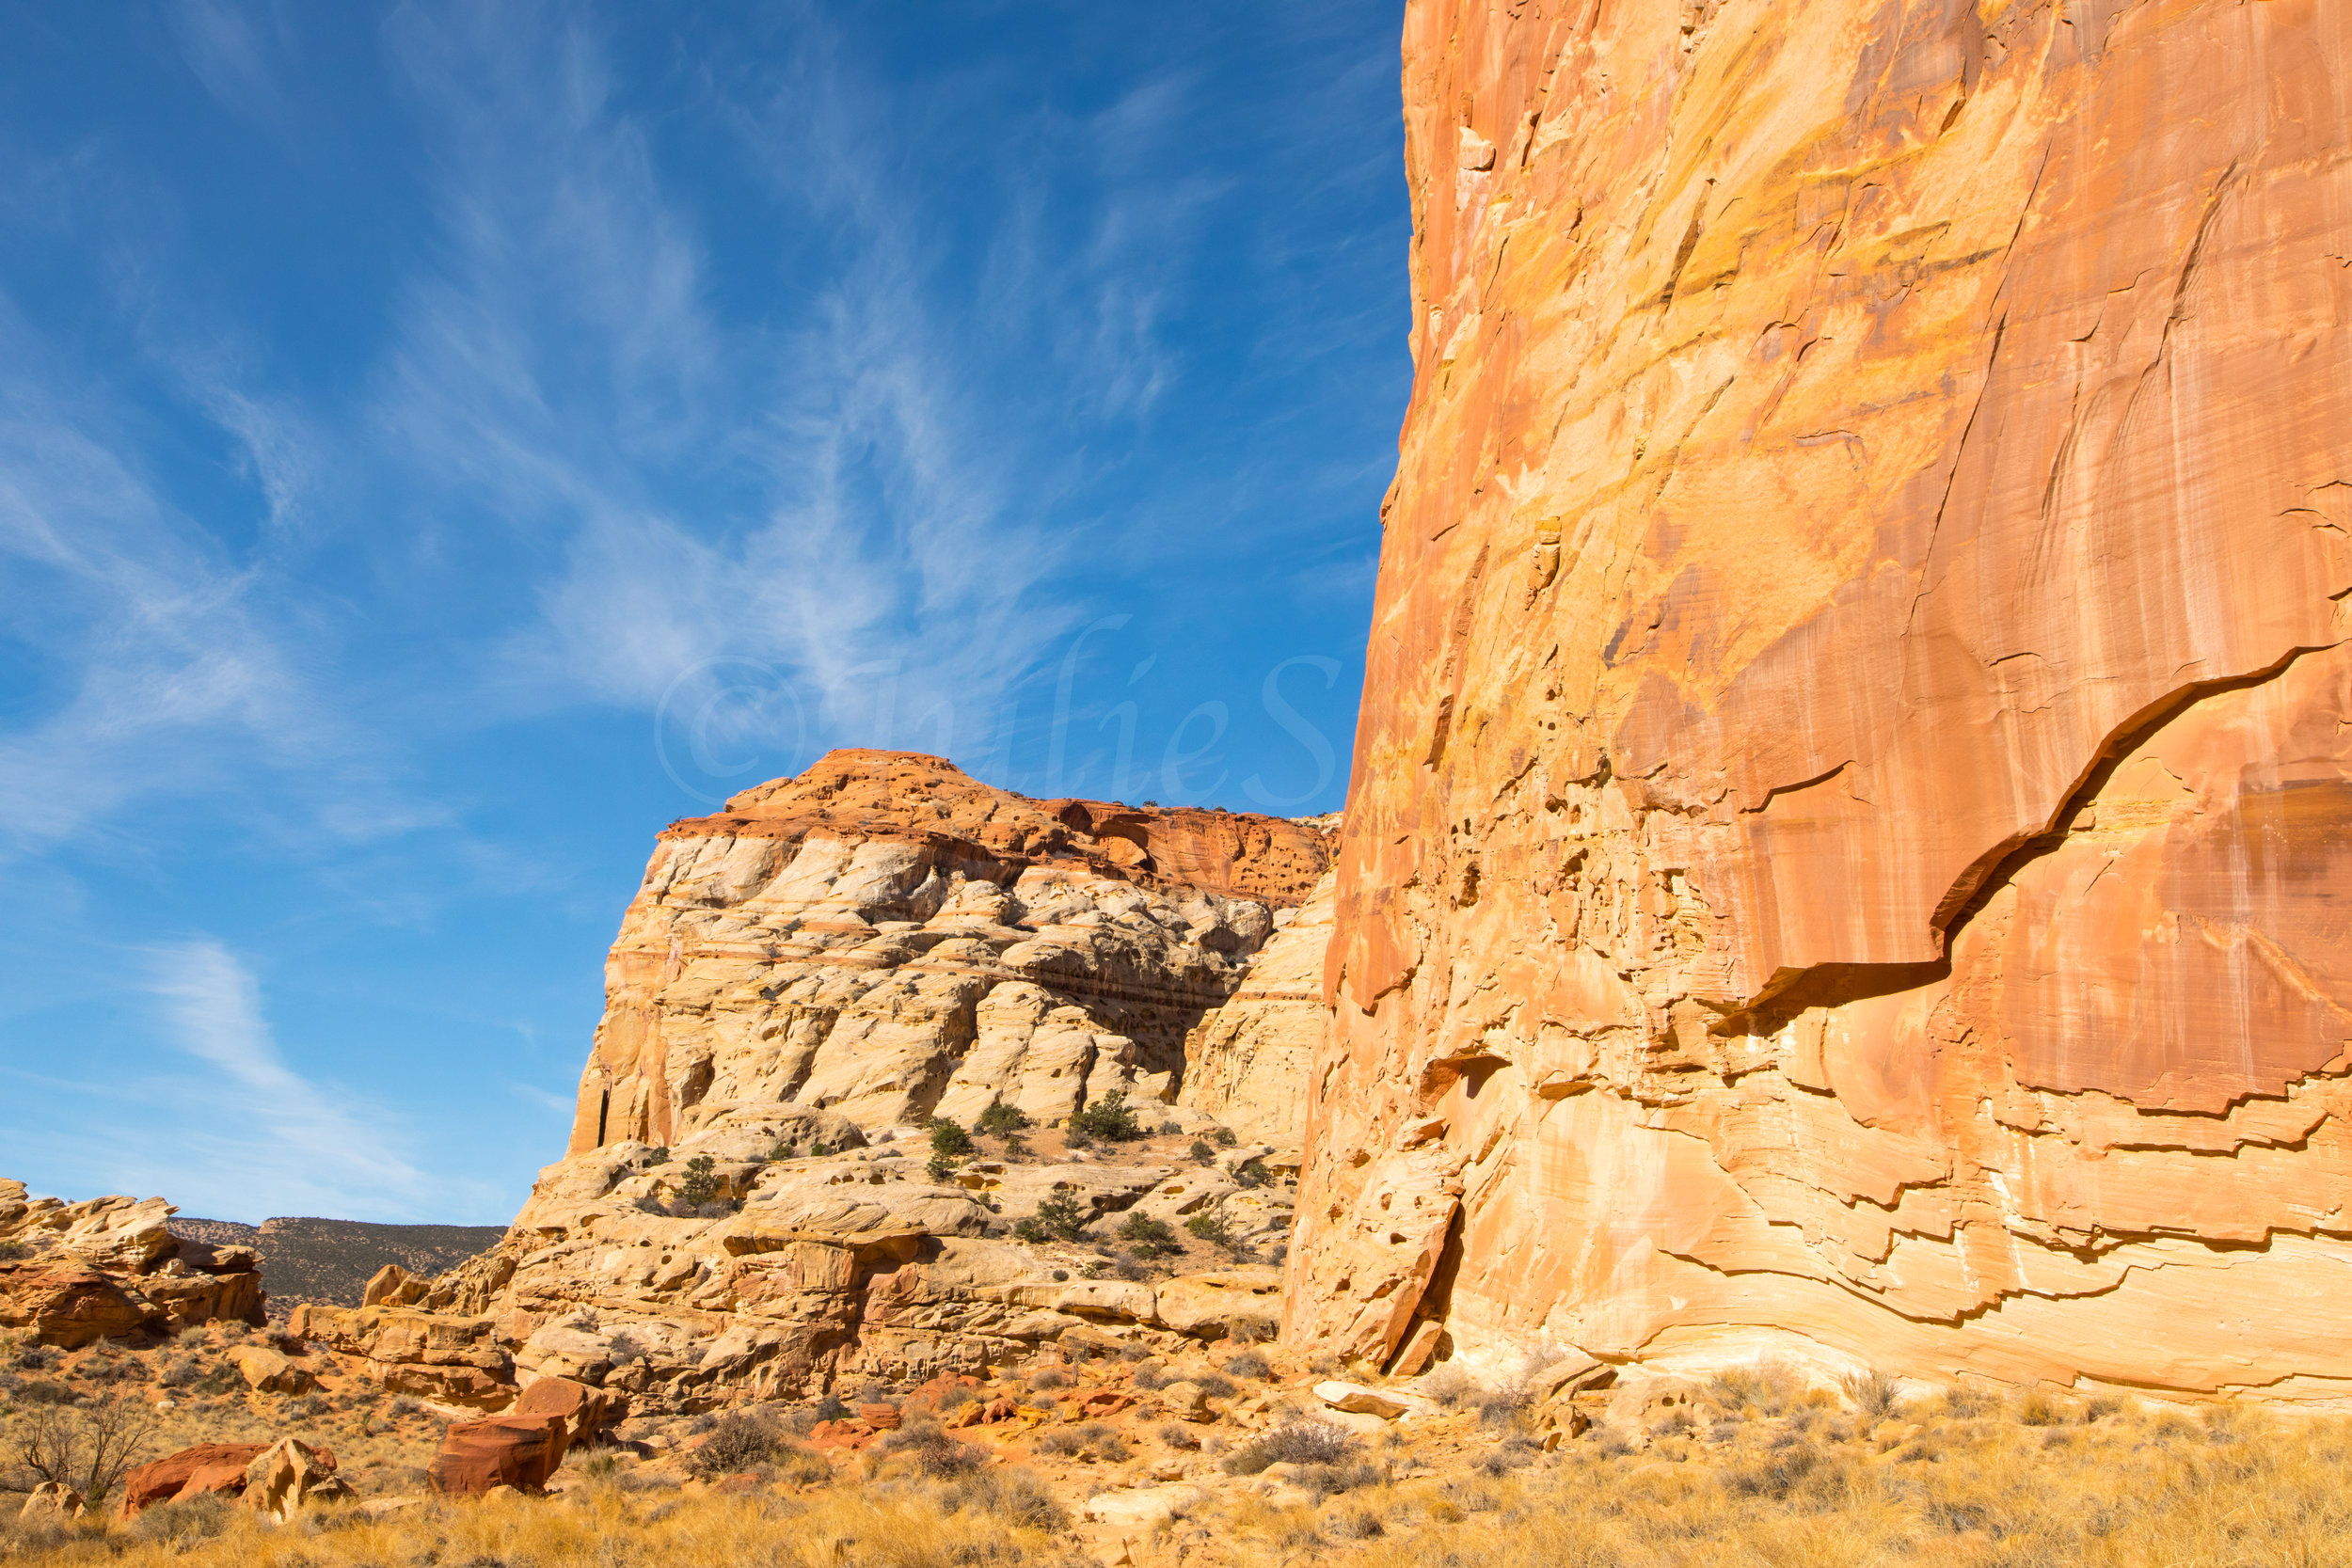 Capitol Reef National Park, Image # 0813